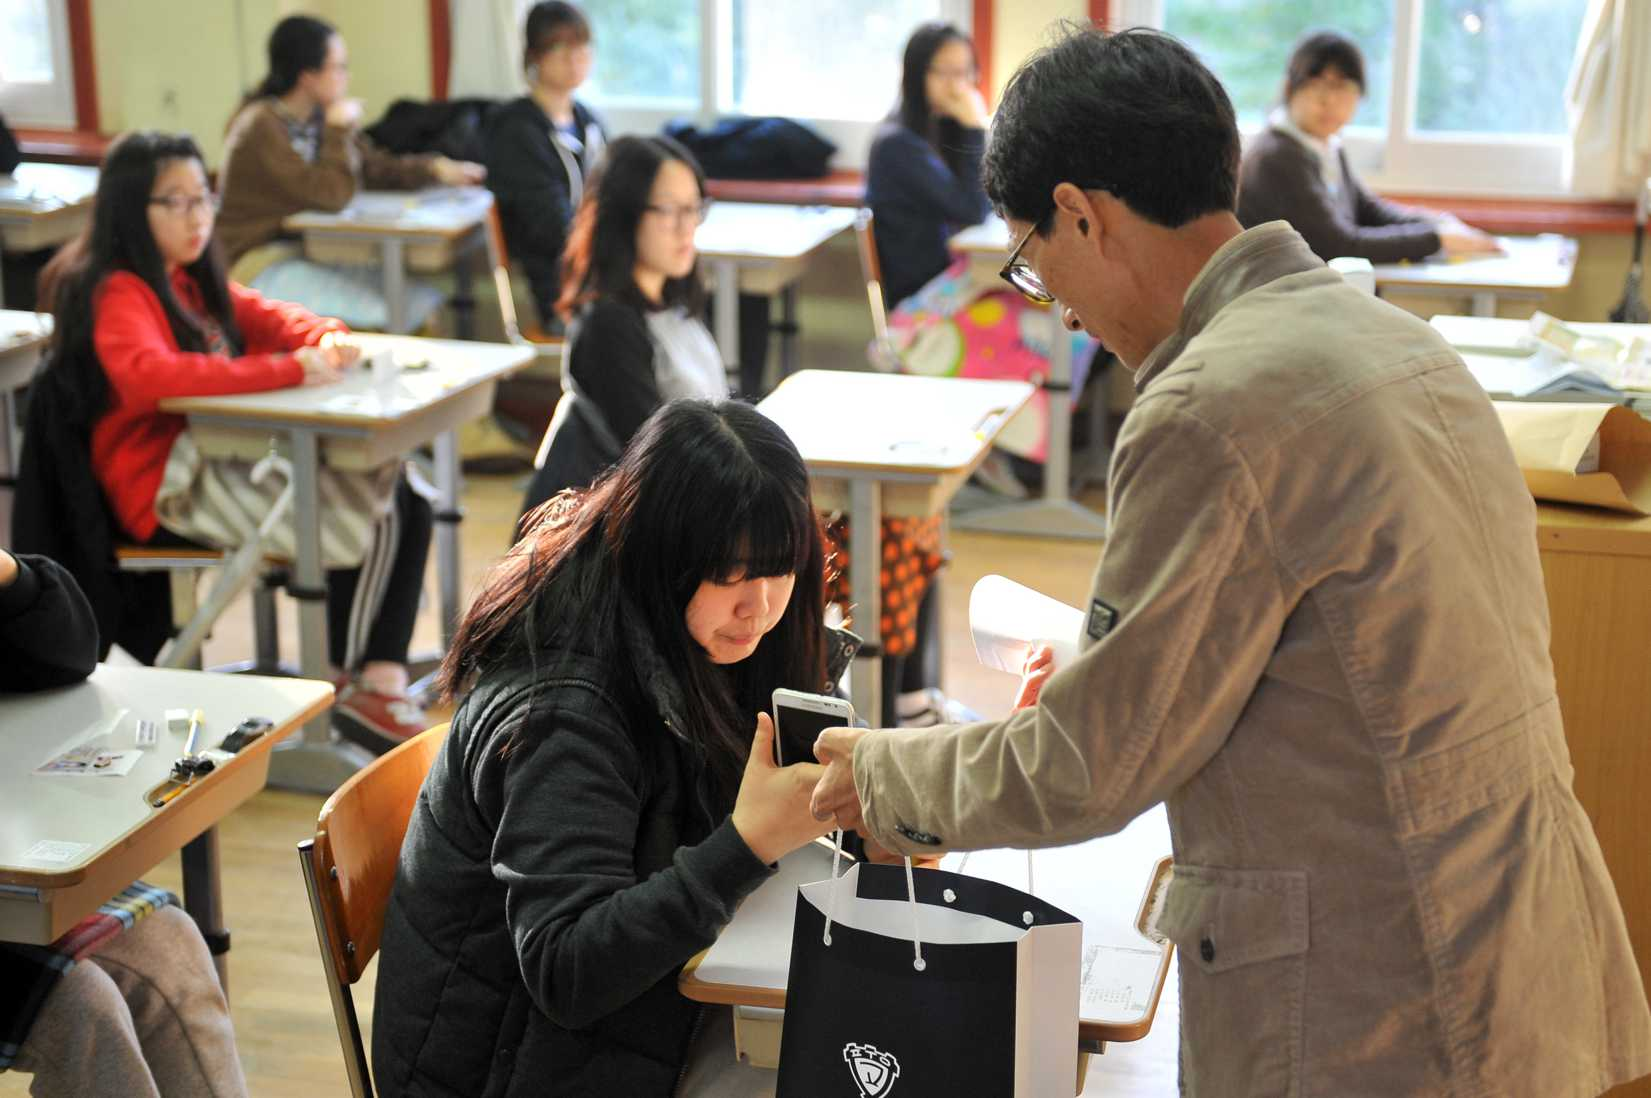 An examination invigilator (R) collects mobile phones from South Korean students before they take the College Scholastic Ability Test, a standardised exam for college entrance, at a high school in Seoul on November 7, 2013.